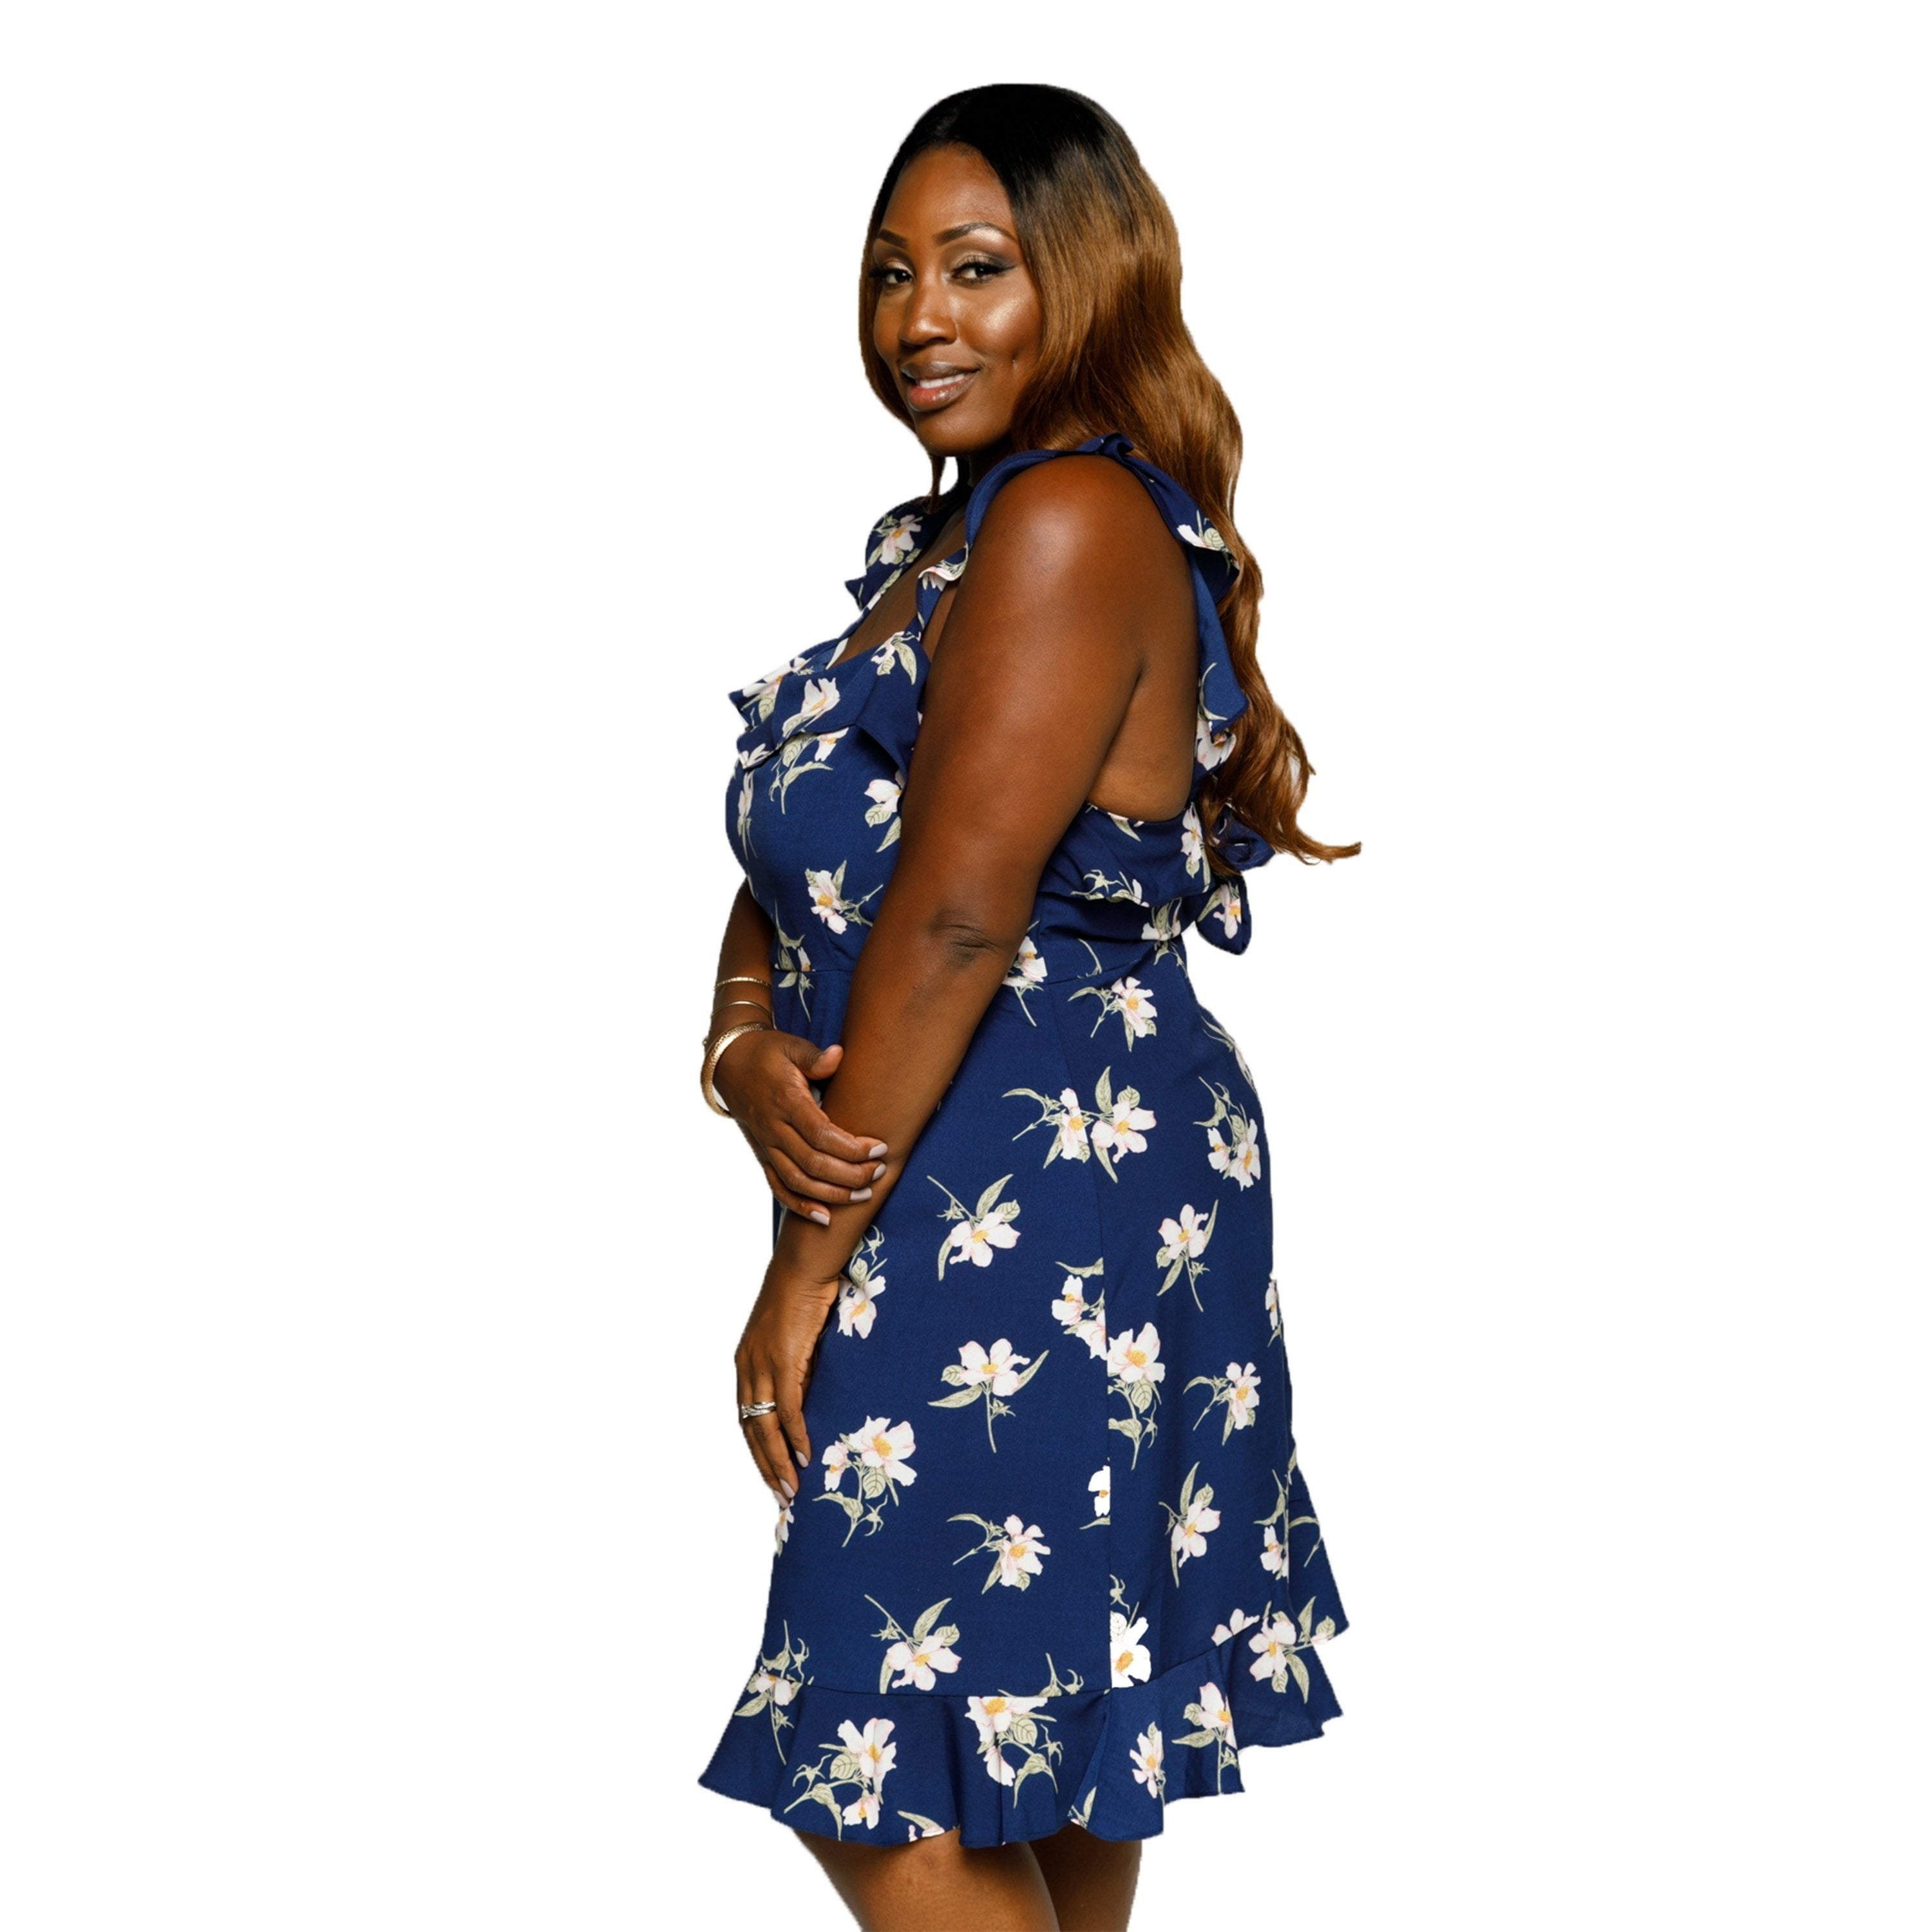 ab148edc37a Shop Xehar Womens Plus Size Sleeveless Ruffle Floral Short Summer Dress -  On Sale - Free Shipping Today - Overstock.com - 21488244